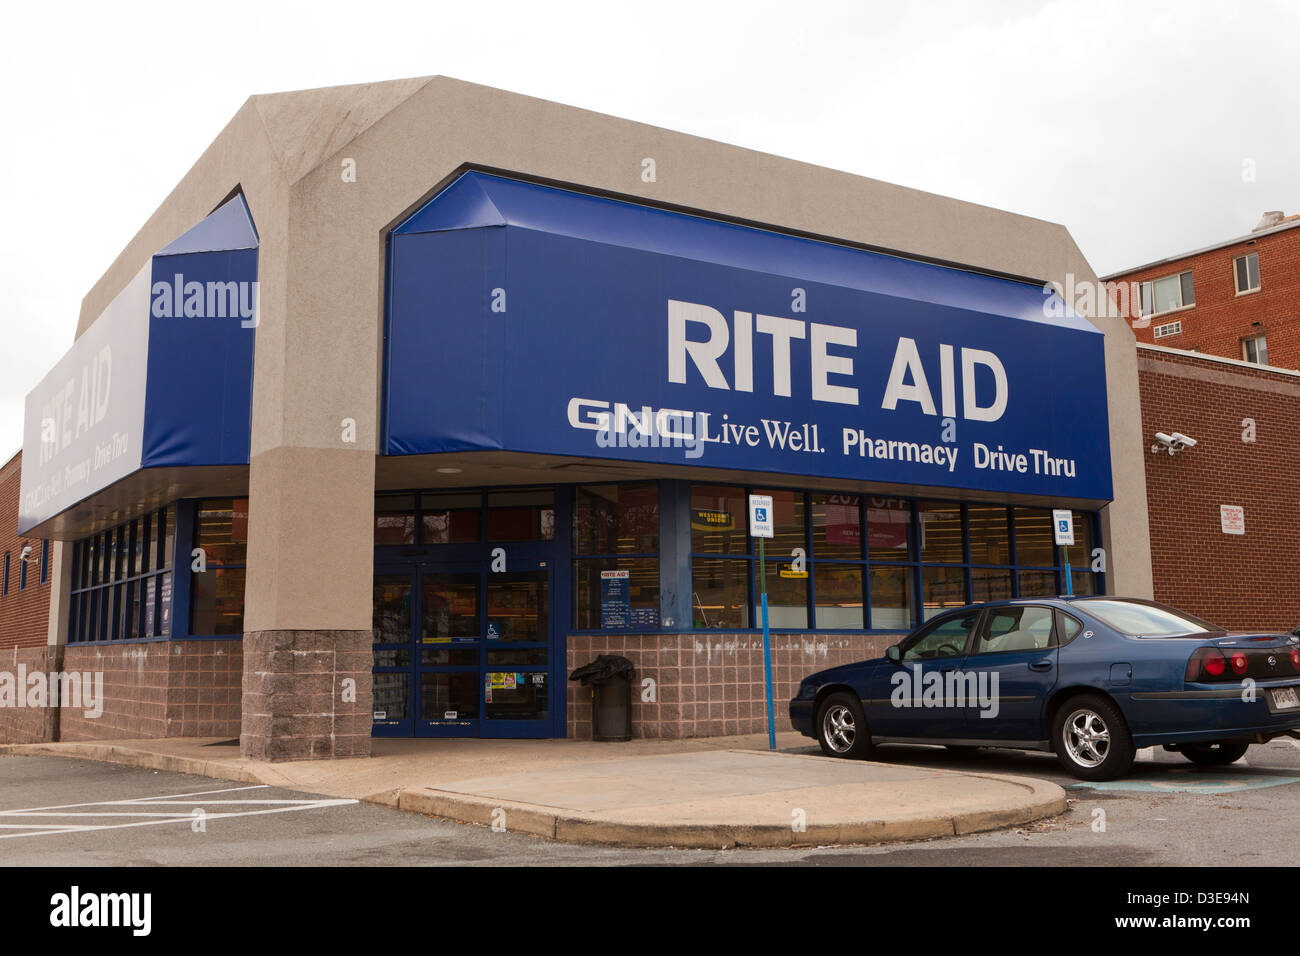 Rite Aid storefront - Stock Image